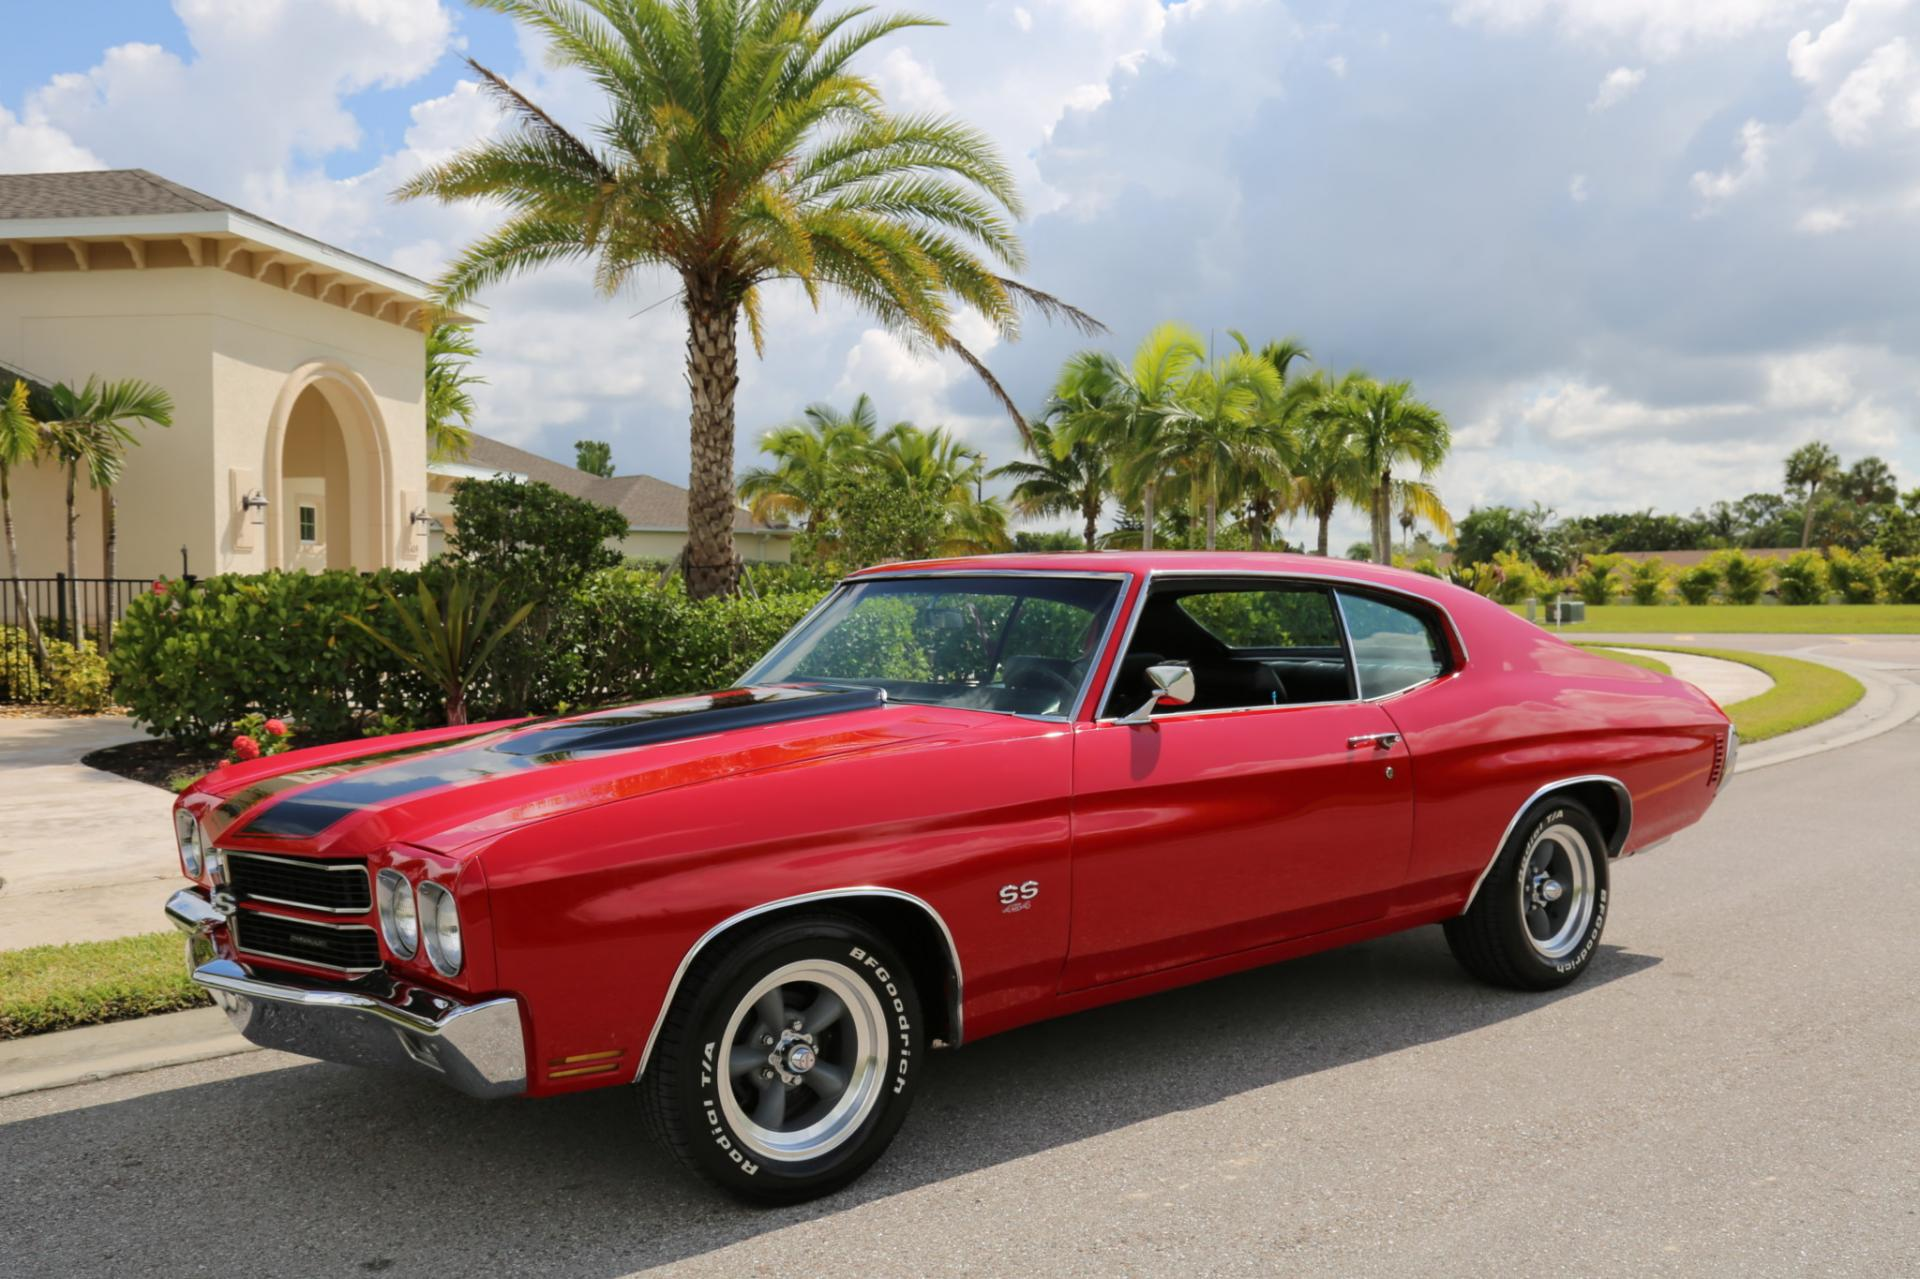 Used 1970 Chevrolet Chevelle SS for sale Sold at Muscle Cars for Sale Inc. in Fort Myers FL 33912 8